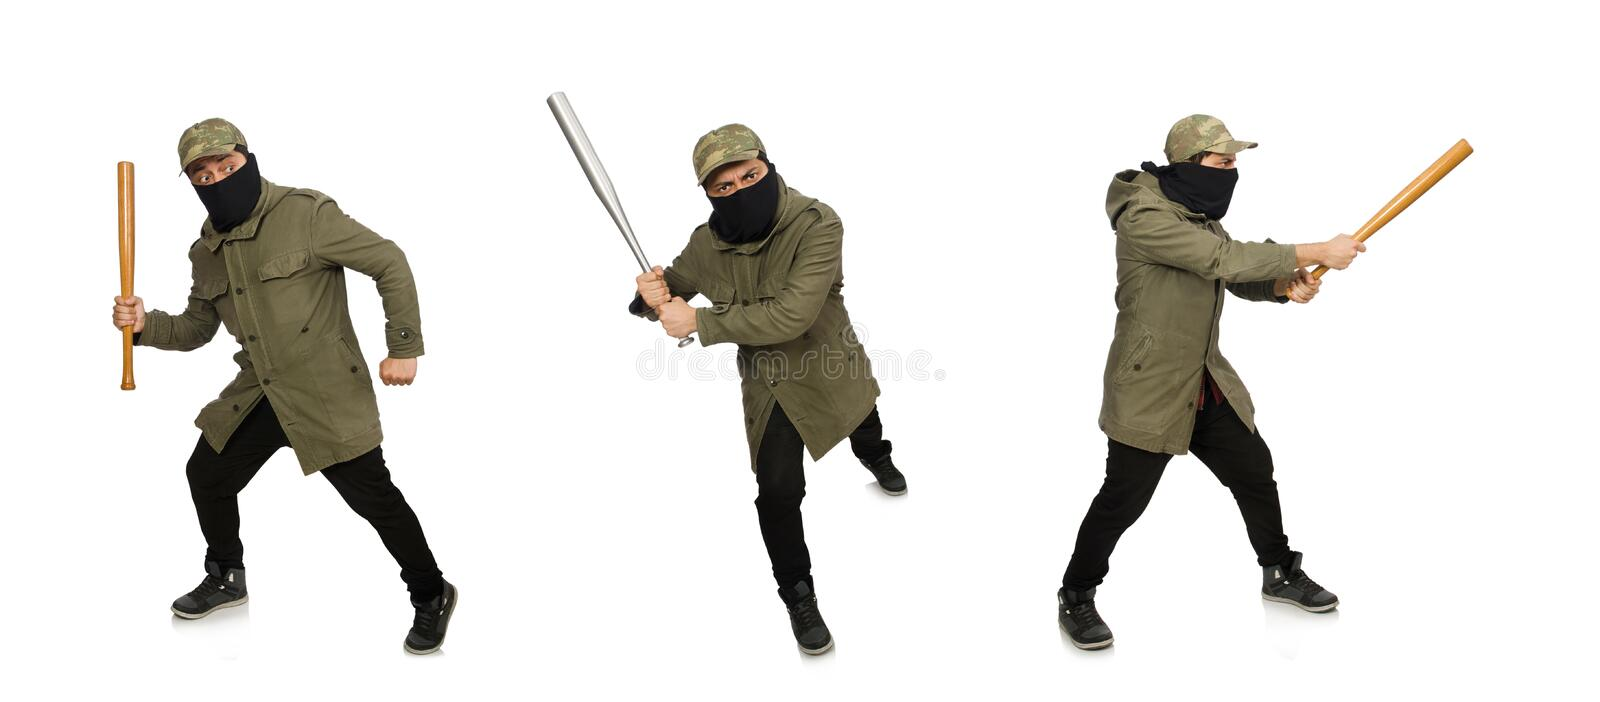 Funny man with baseball bat isolated on white. The funny man with baseball bat isolated on white royalty free stock photography